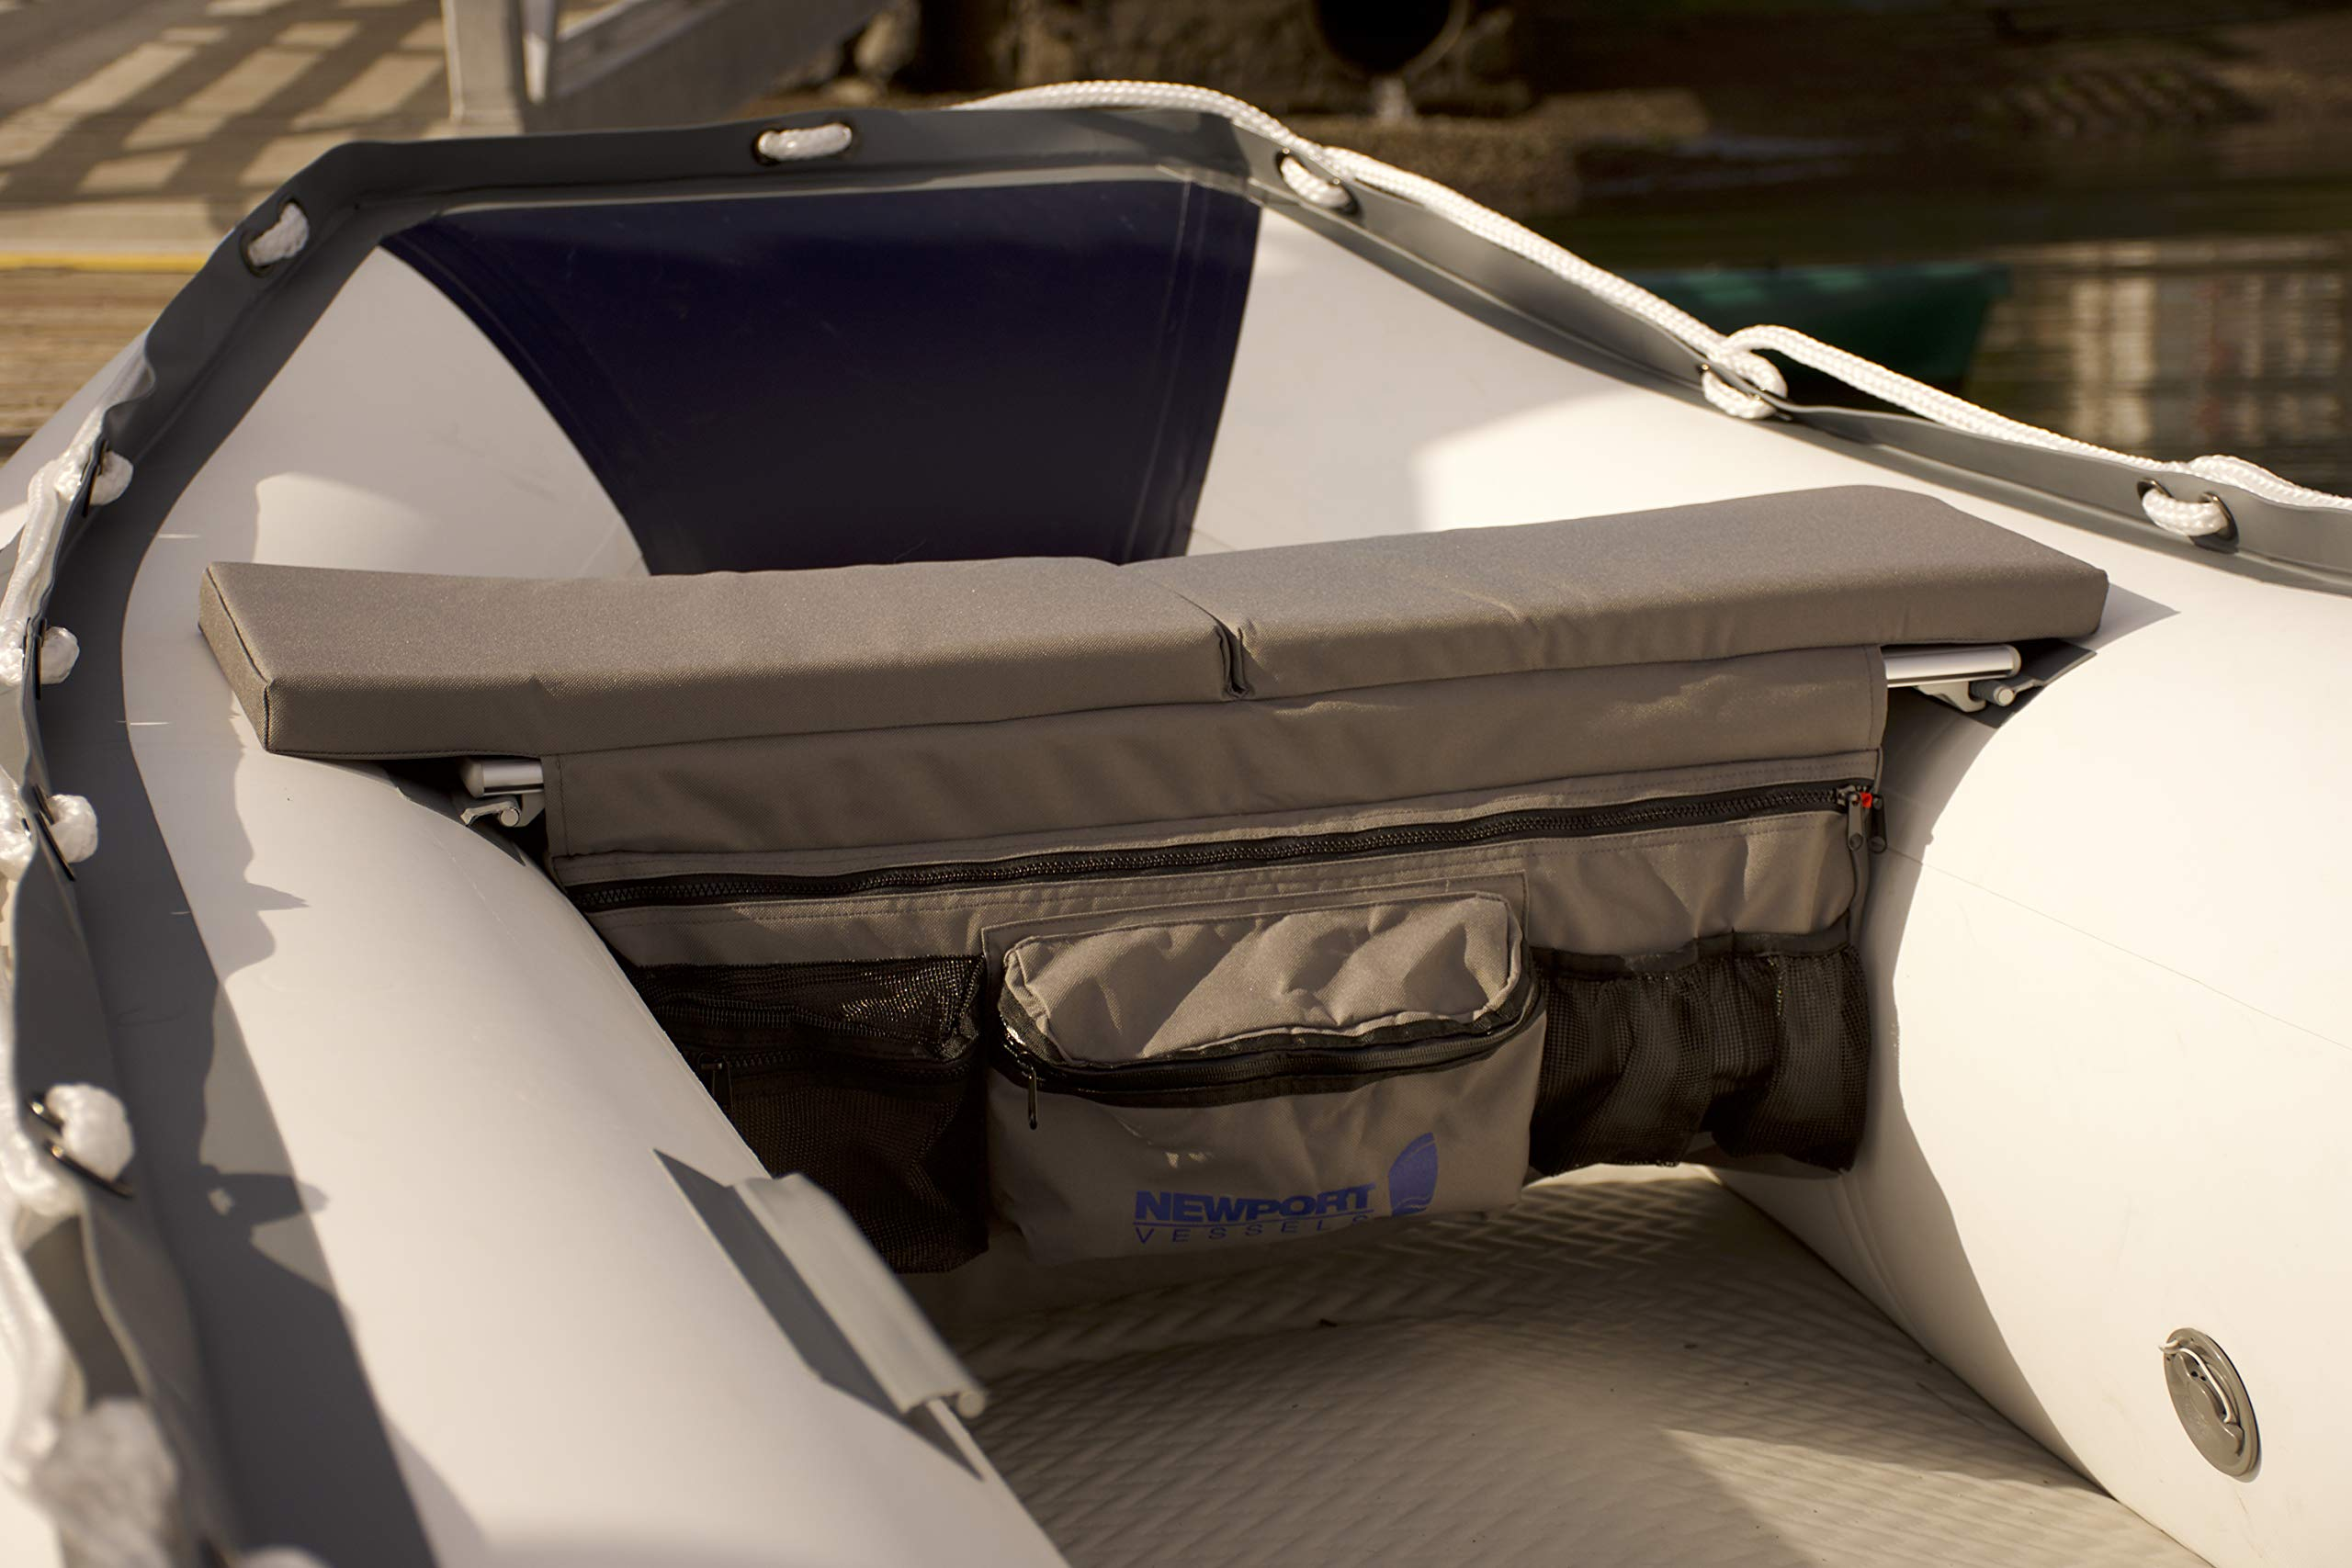 Newport Vessels Dinghy Inflatable Boat Seat Cushion & Underseat Storage Bag by Newport Vessels